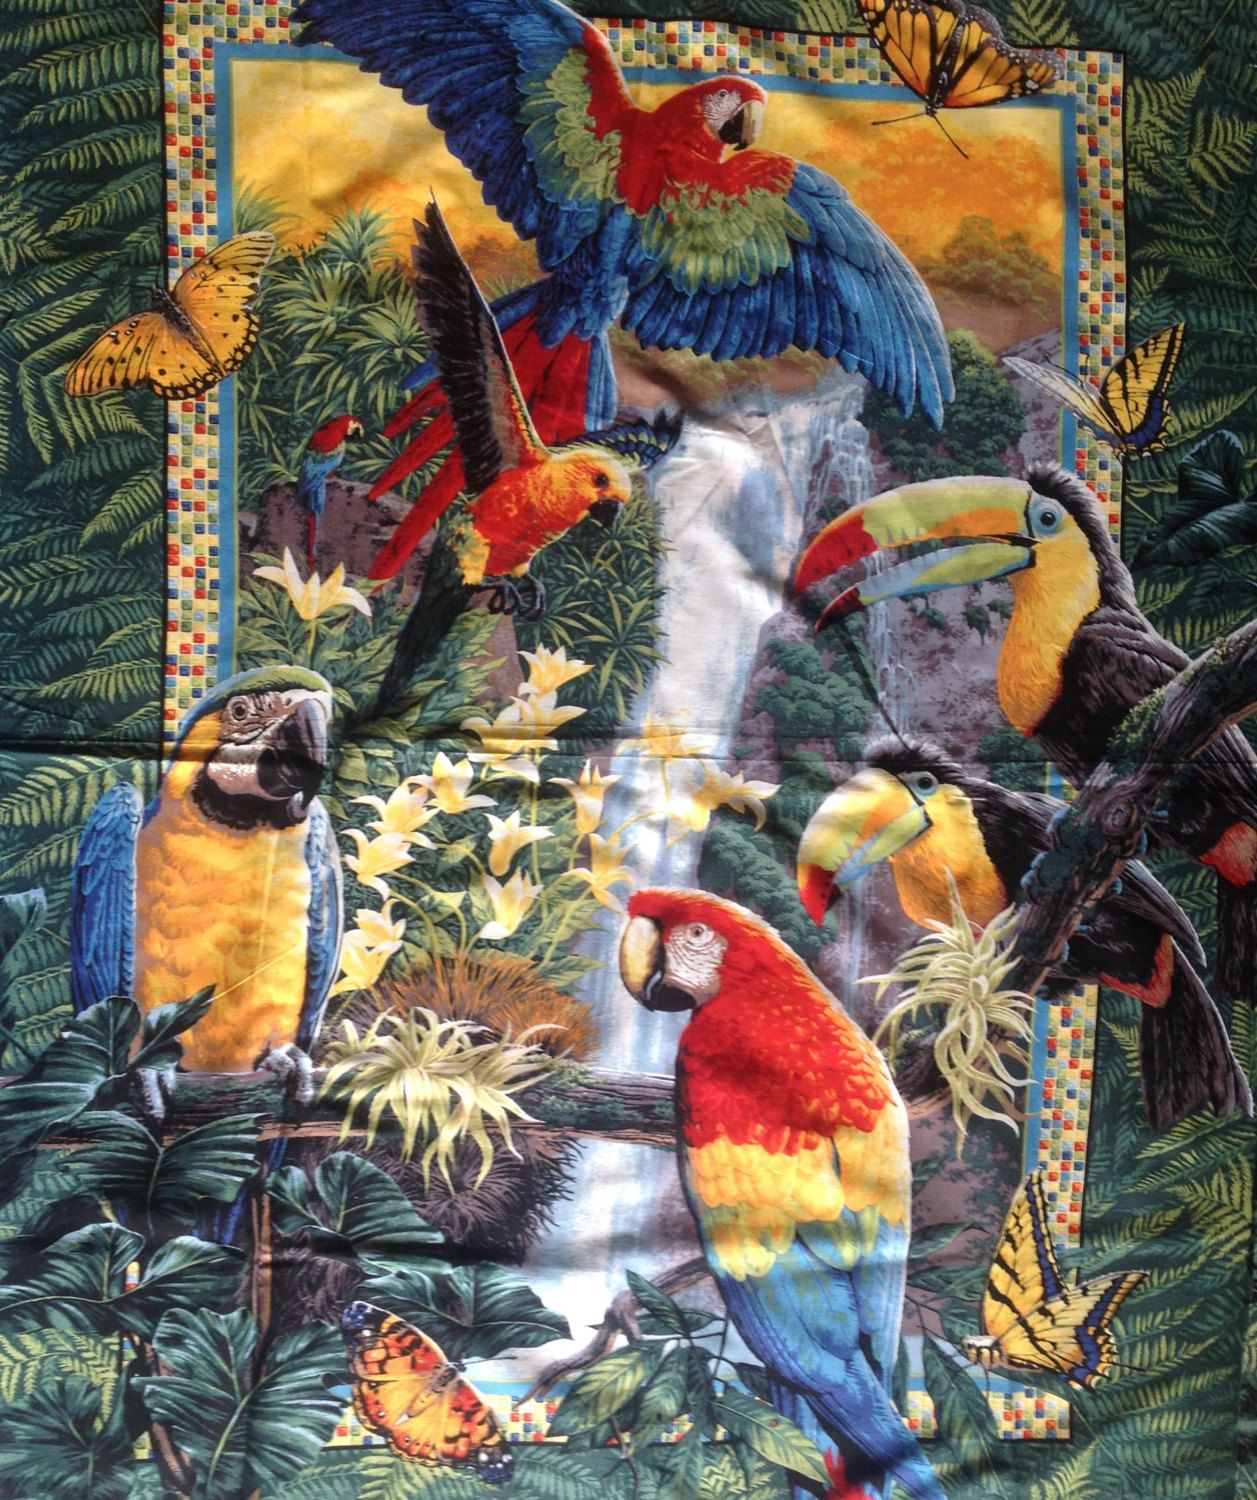 Parrot Toucan Jungle Bird Quilt Top Panel 35 X 44 Bird Quilt